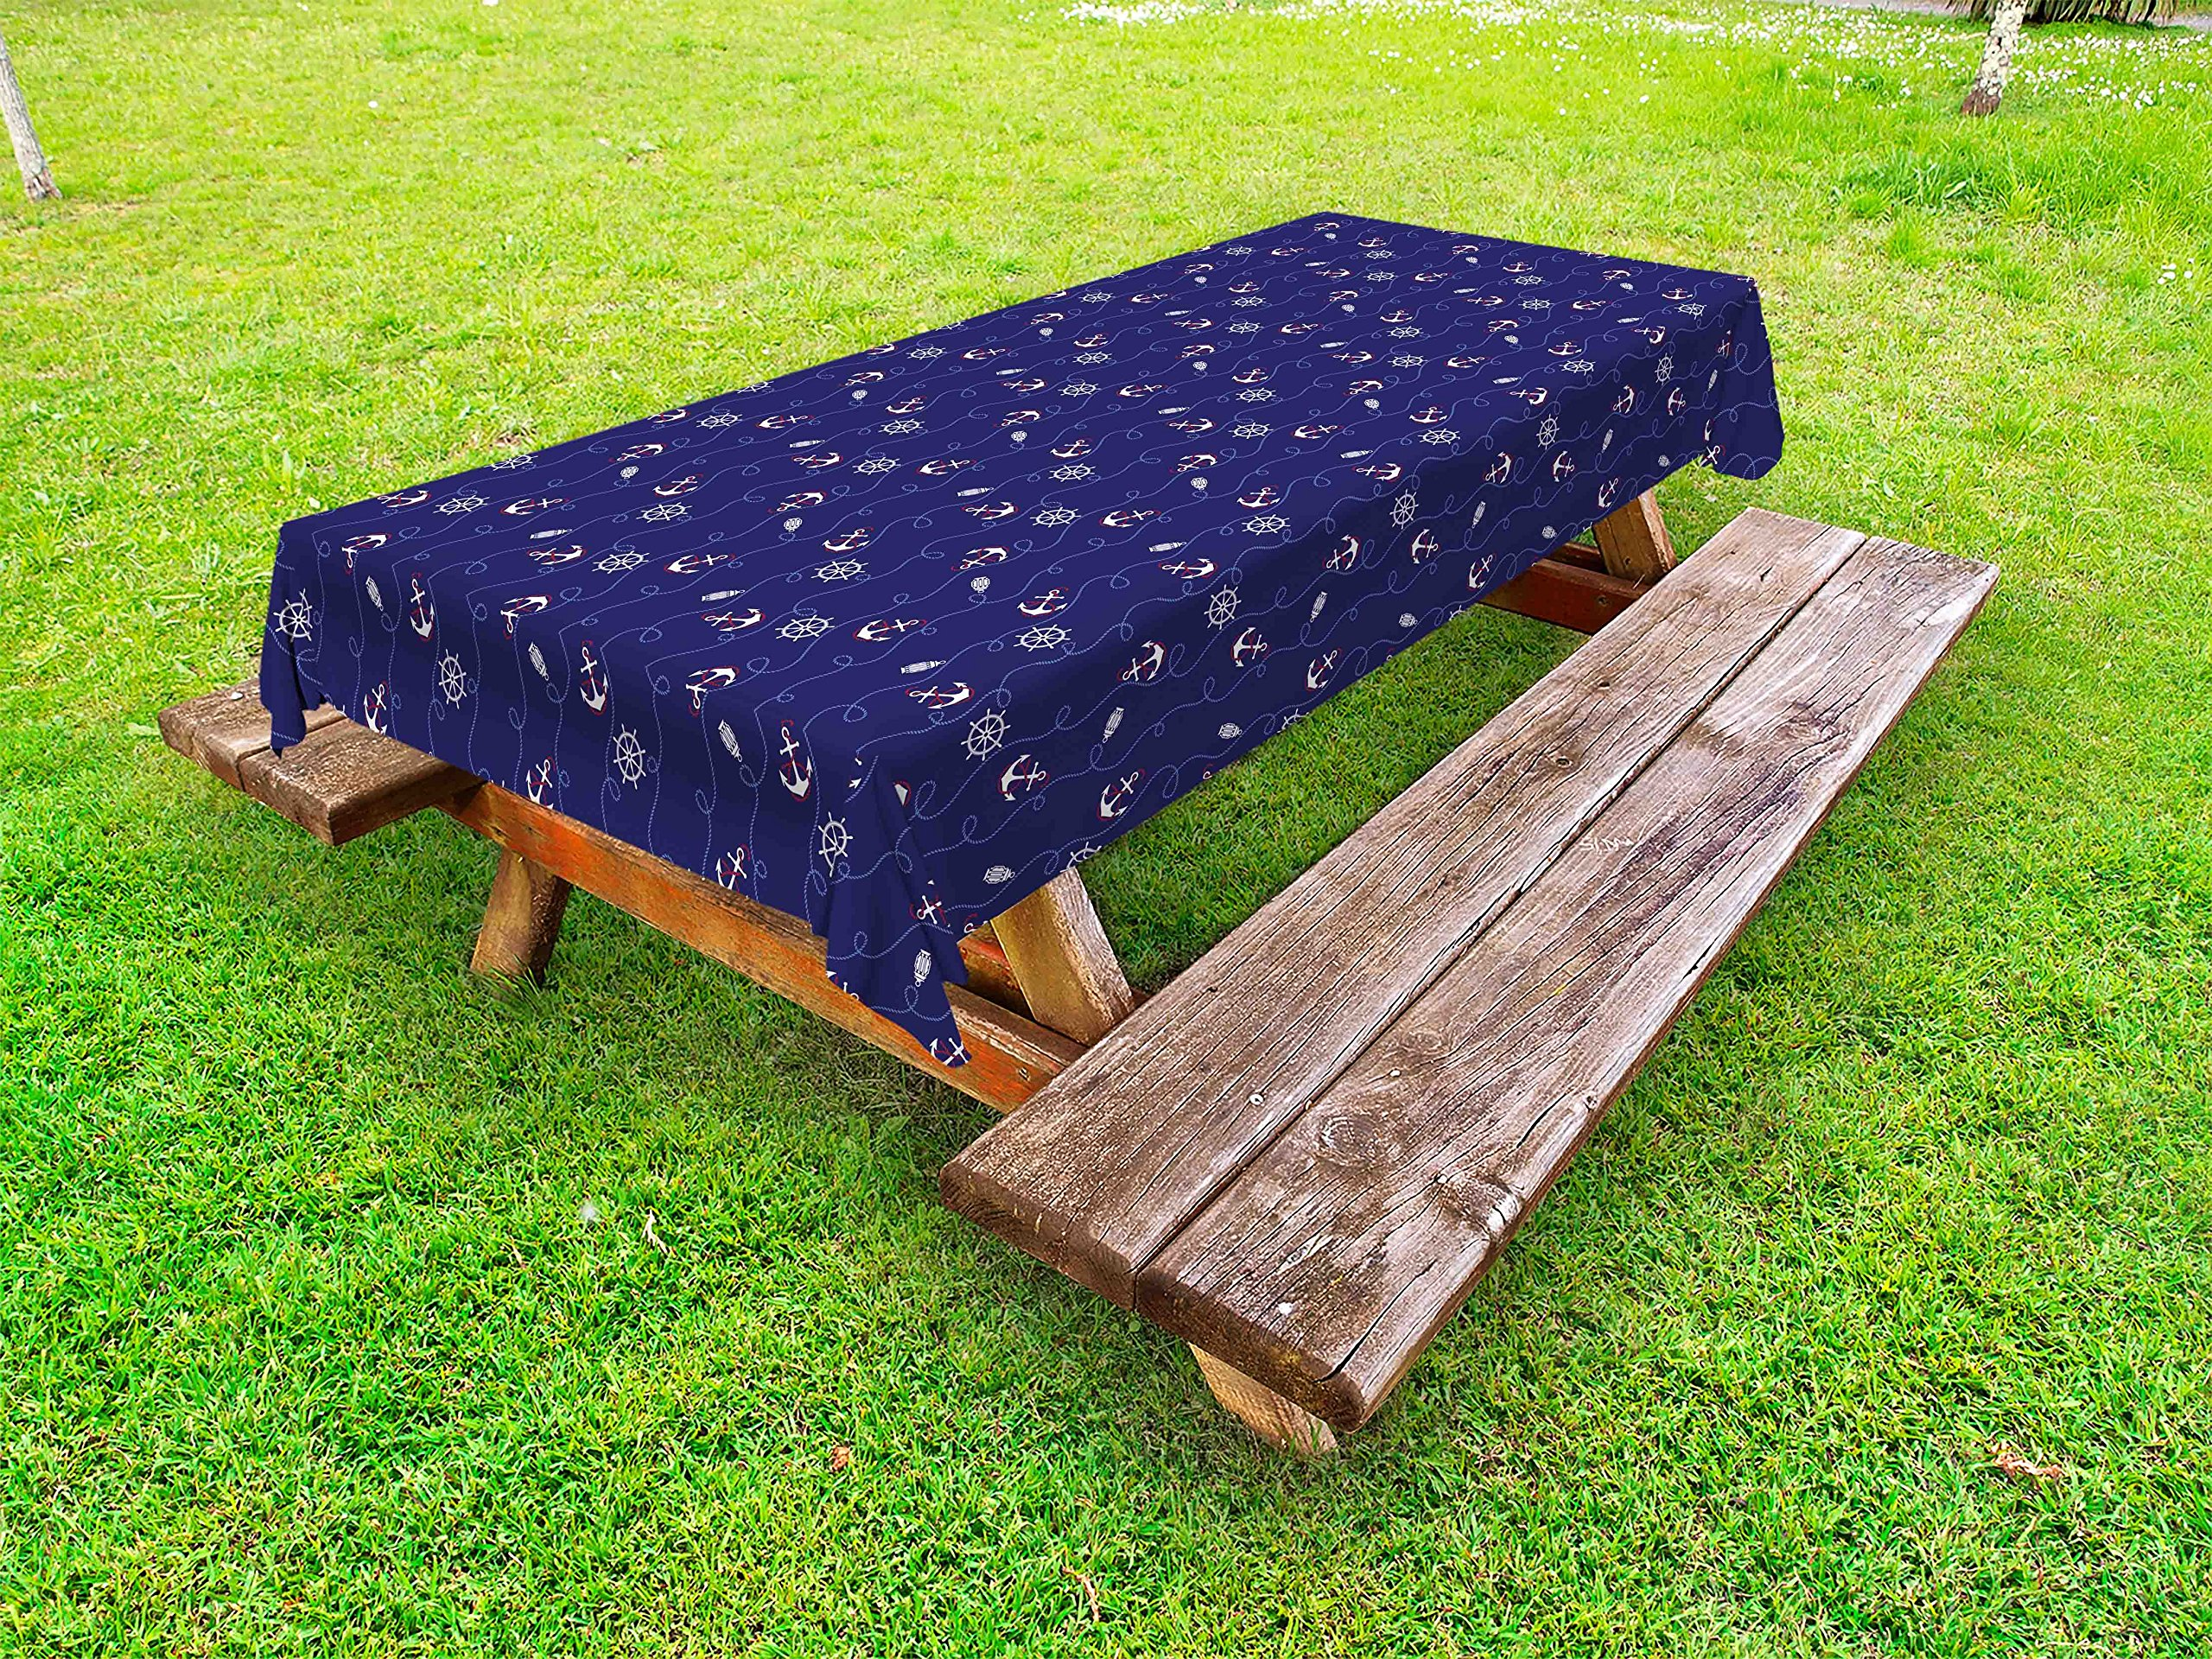 Lunarable Anchor Outdoor Tablecloth, Nautical Composition with Helm and Curved Ropes on a Navy Blue Background, Decorative Washable Picnic Table Cloth, 58 X 120 Inches, Navy Blue White Ruby